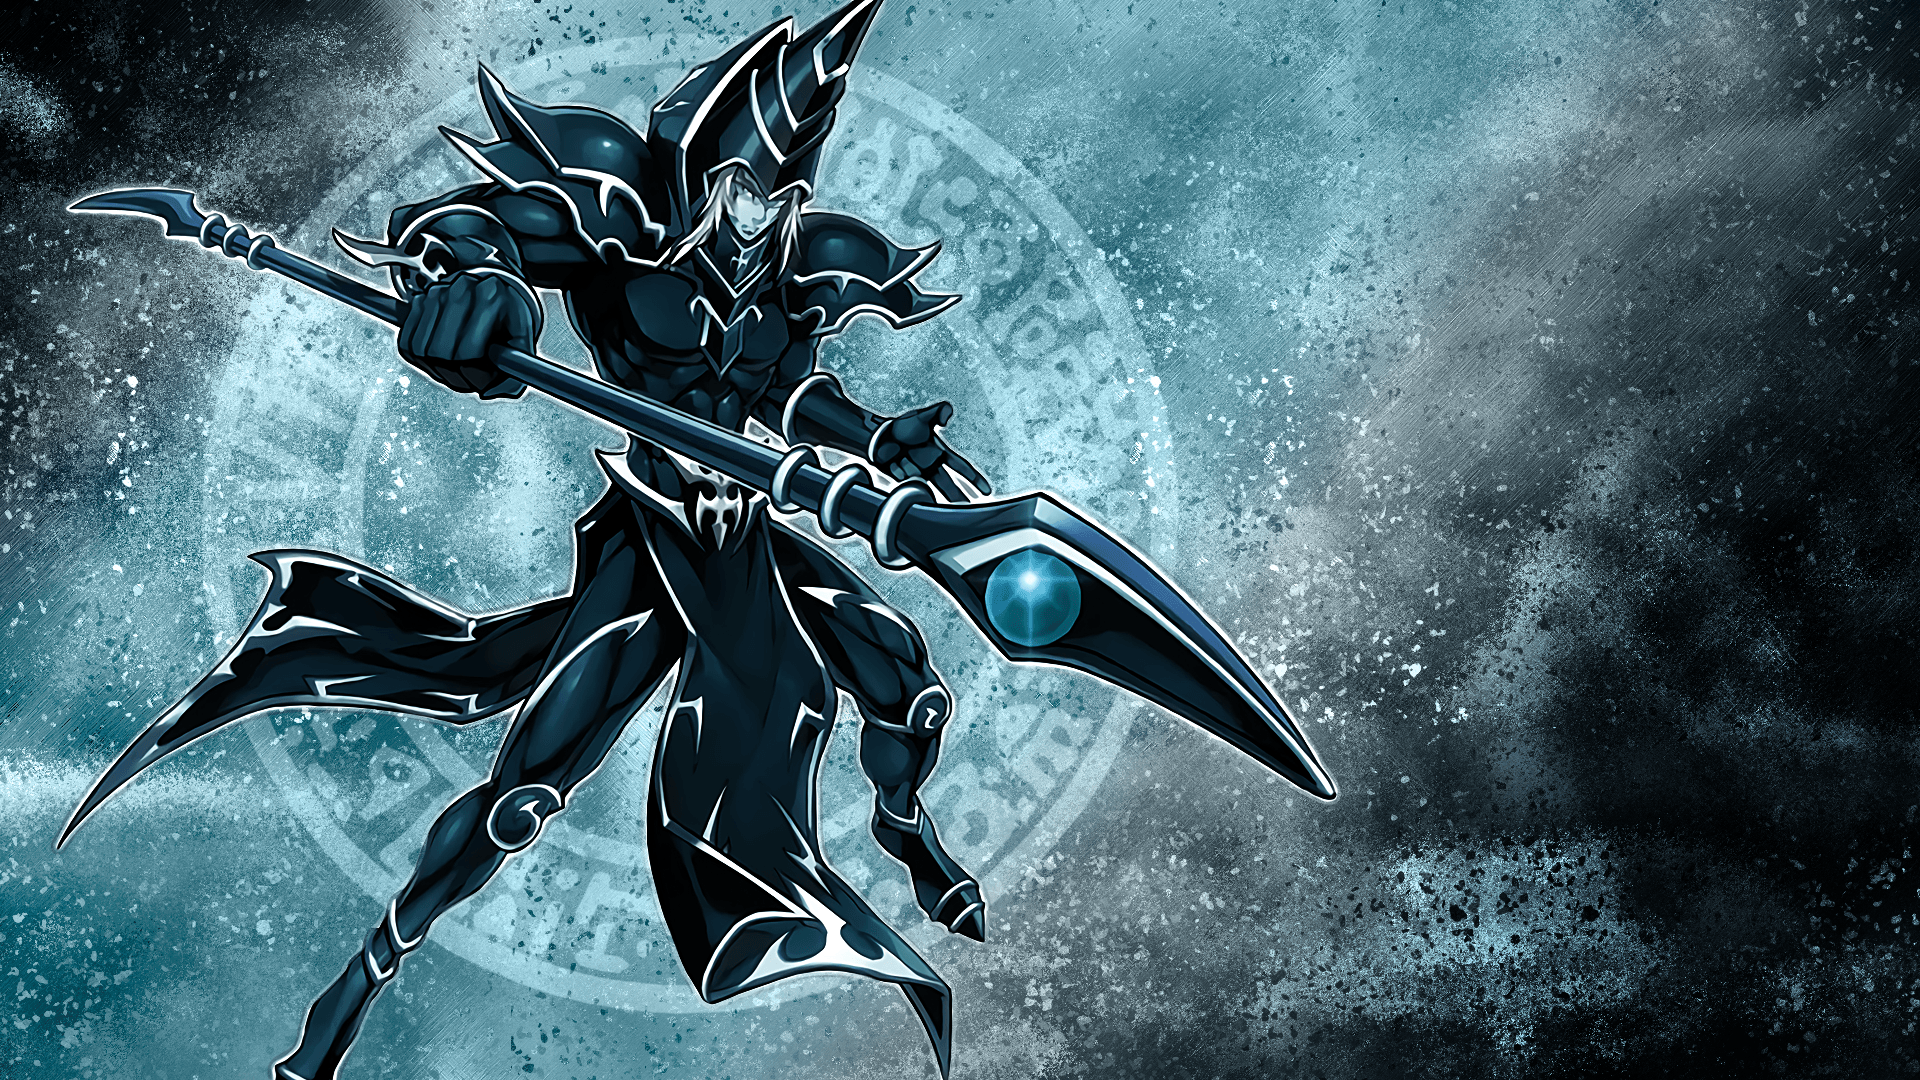 Yu Gi Oh Dark Magician Wallpapers Wallpaper Cave